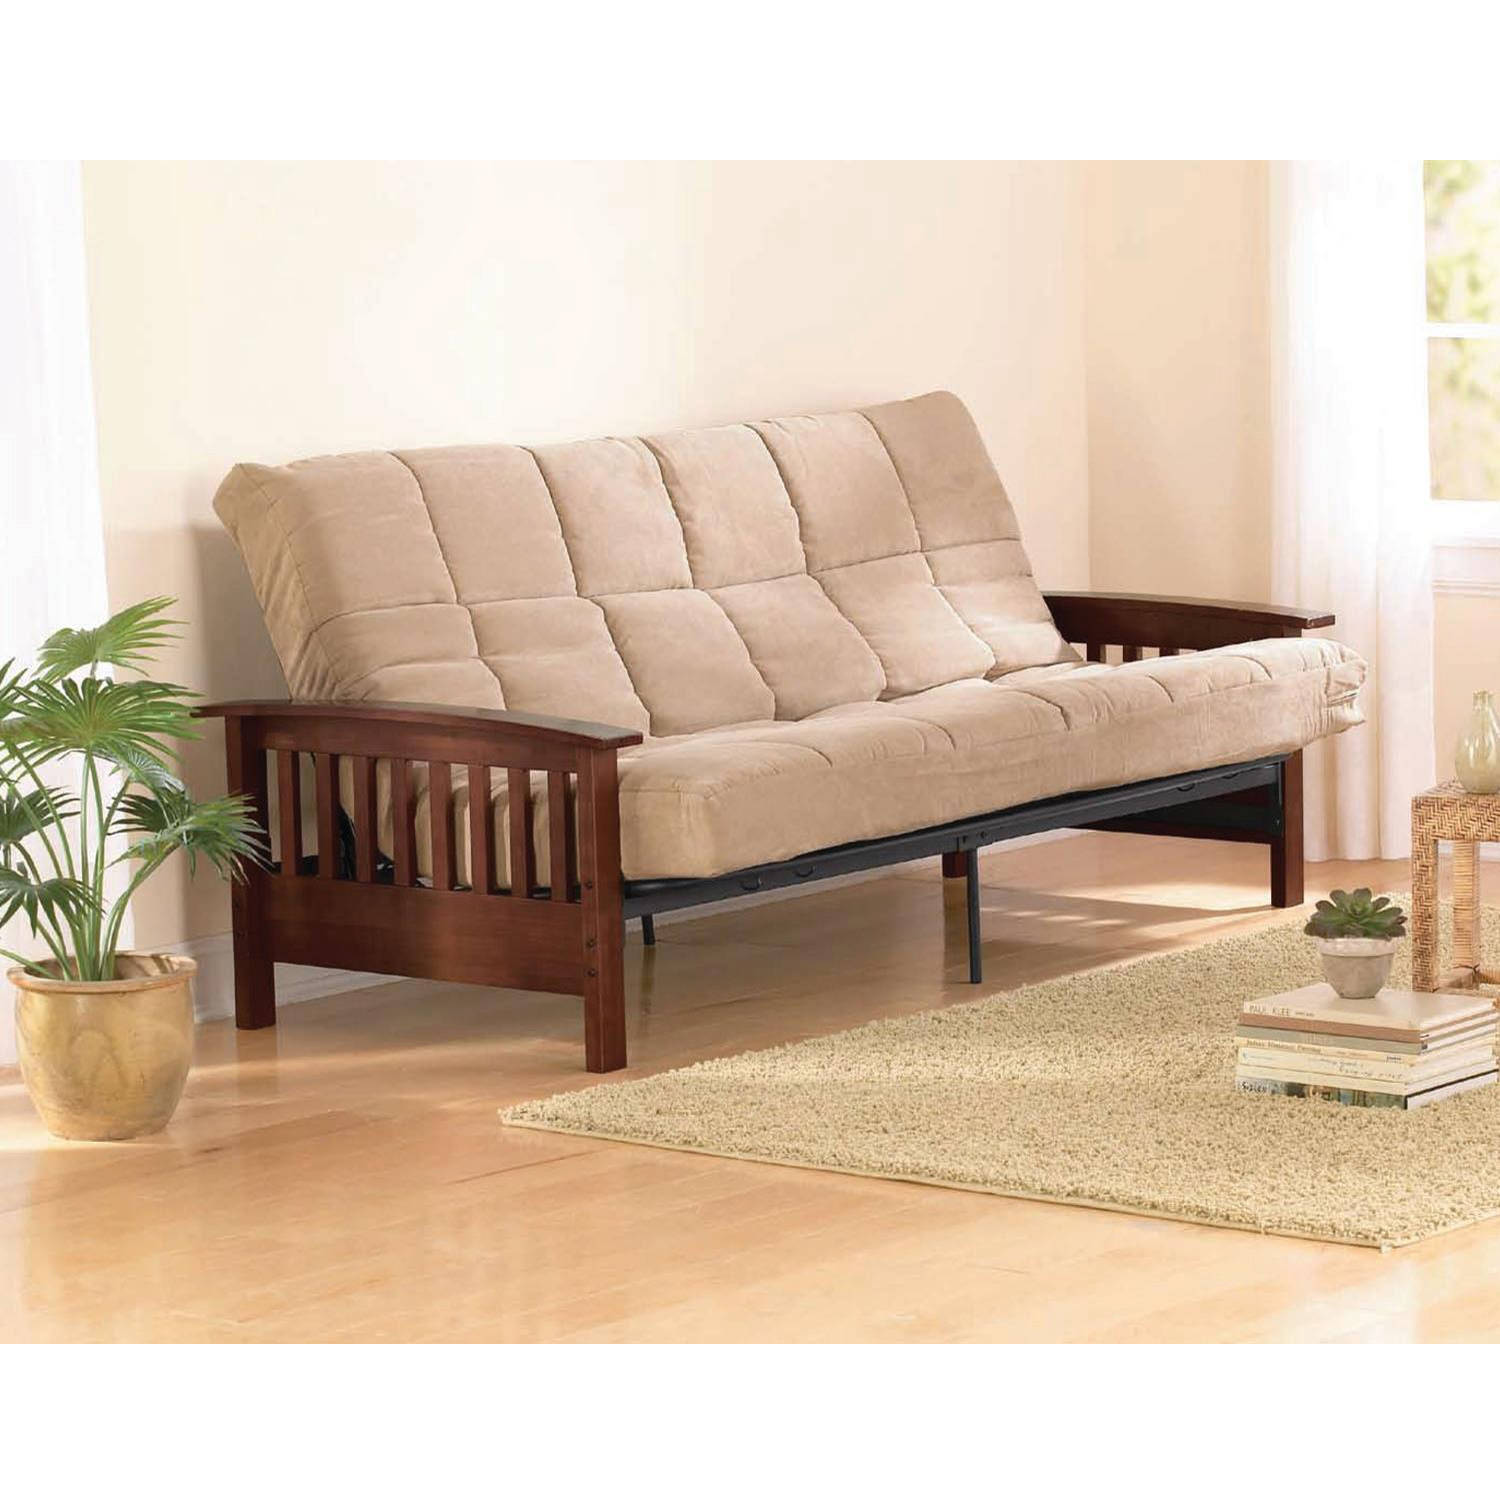 Belleze Convertible Futon Folding Sofa Bed Couch Sleep Adjustable